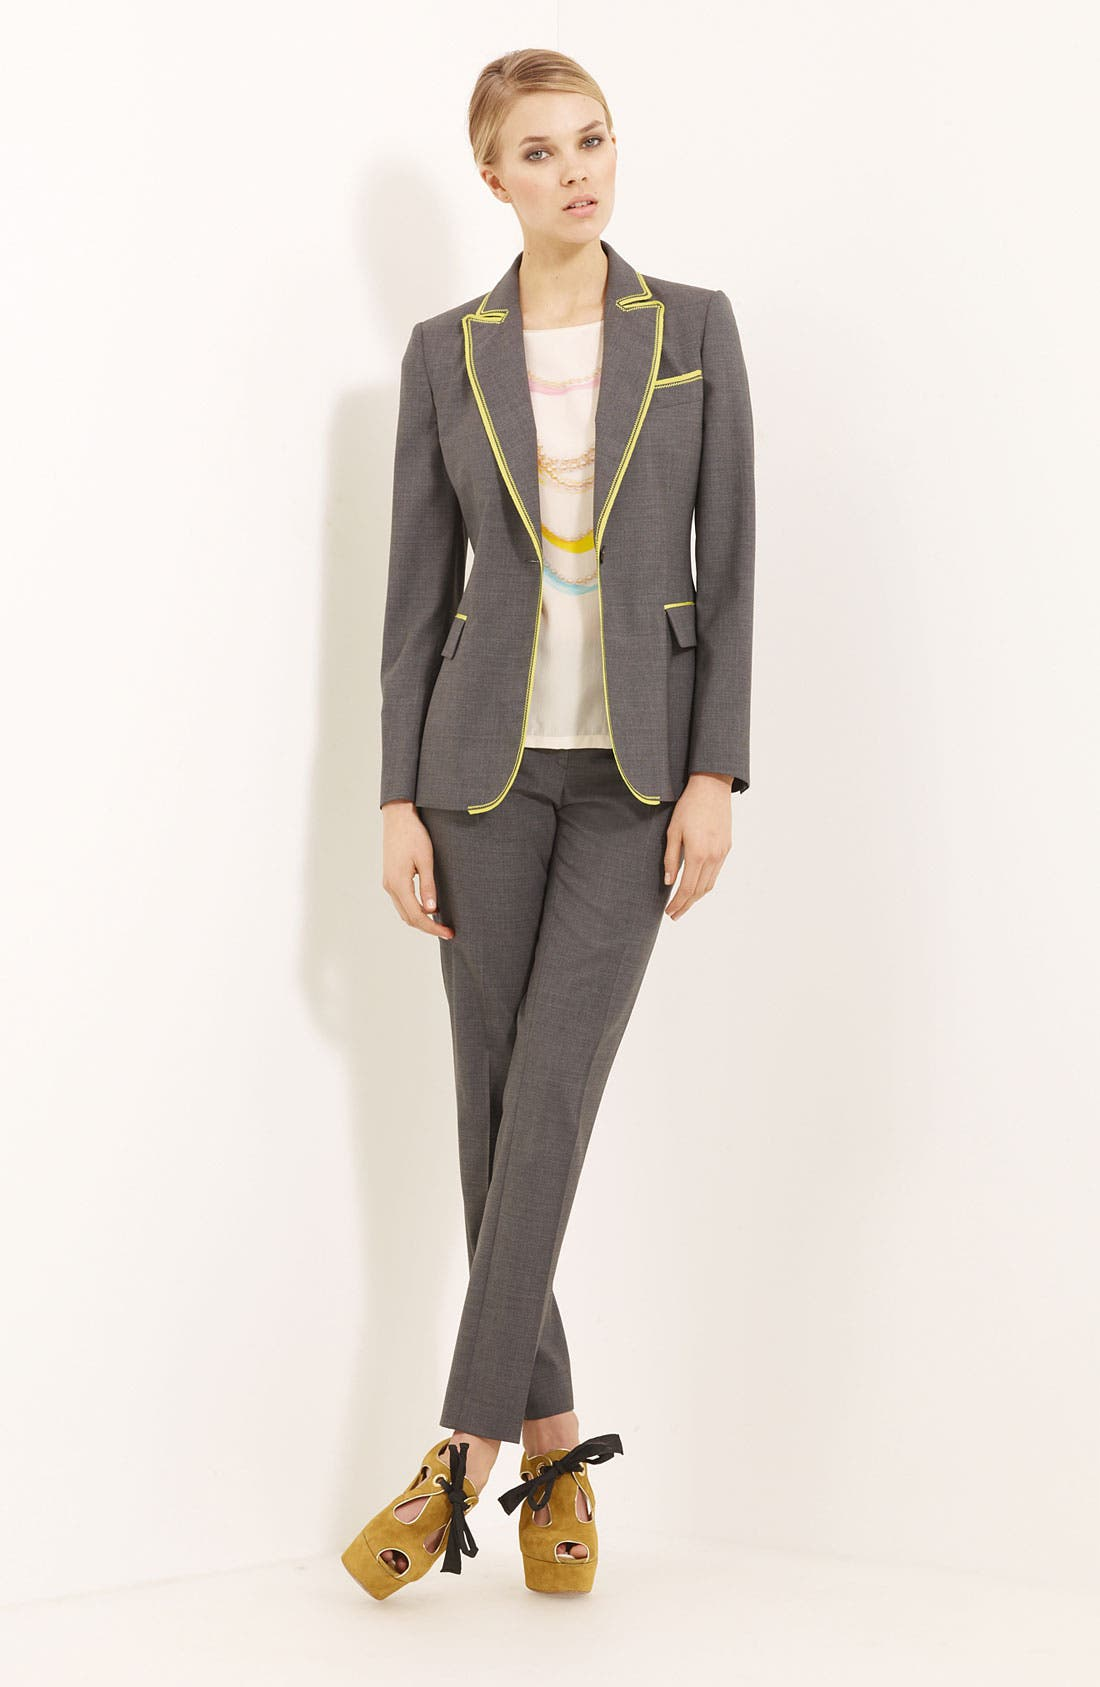 Main Image - Moschino Cheap & Chic Jacket & Trousers